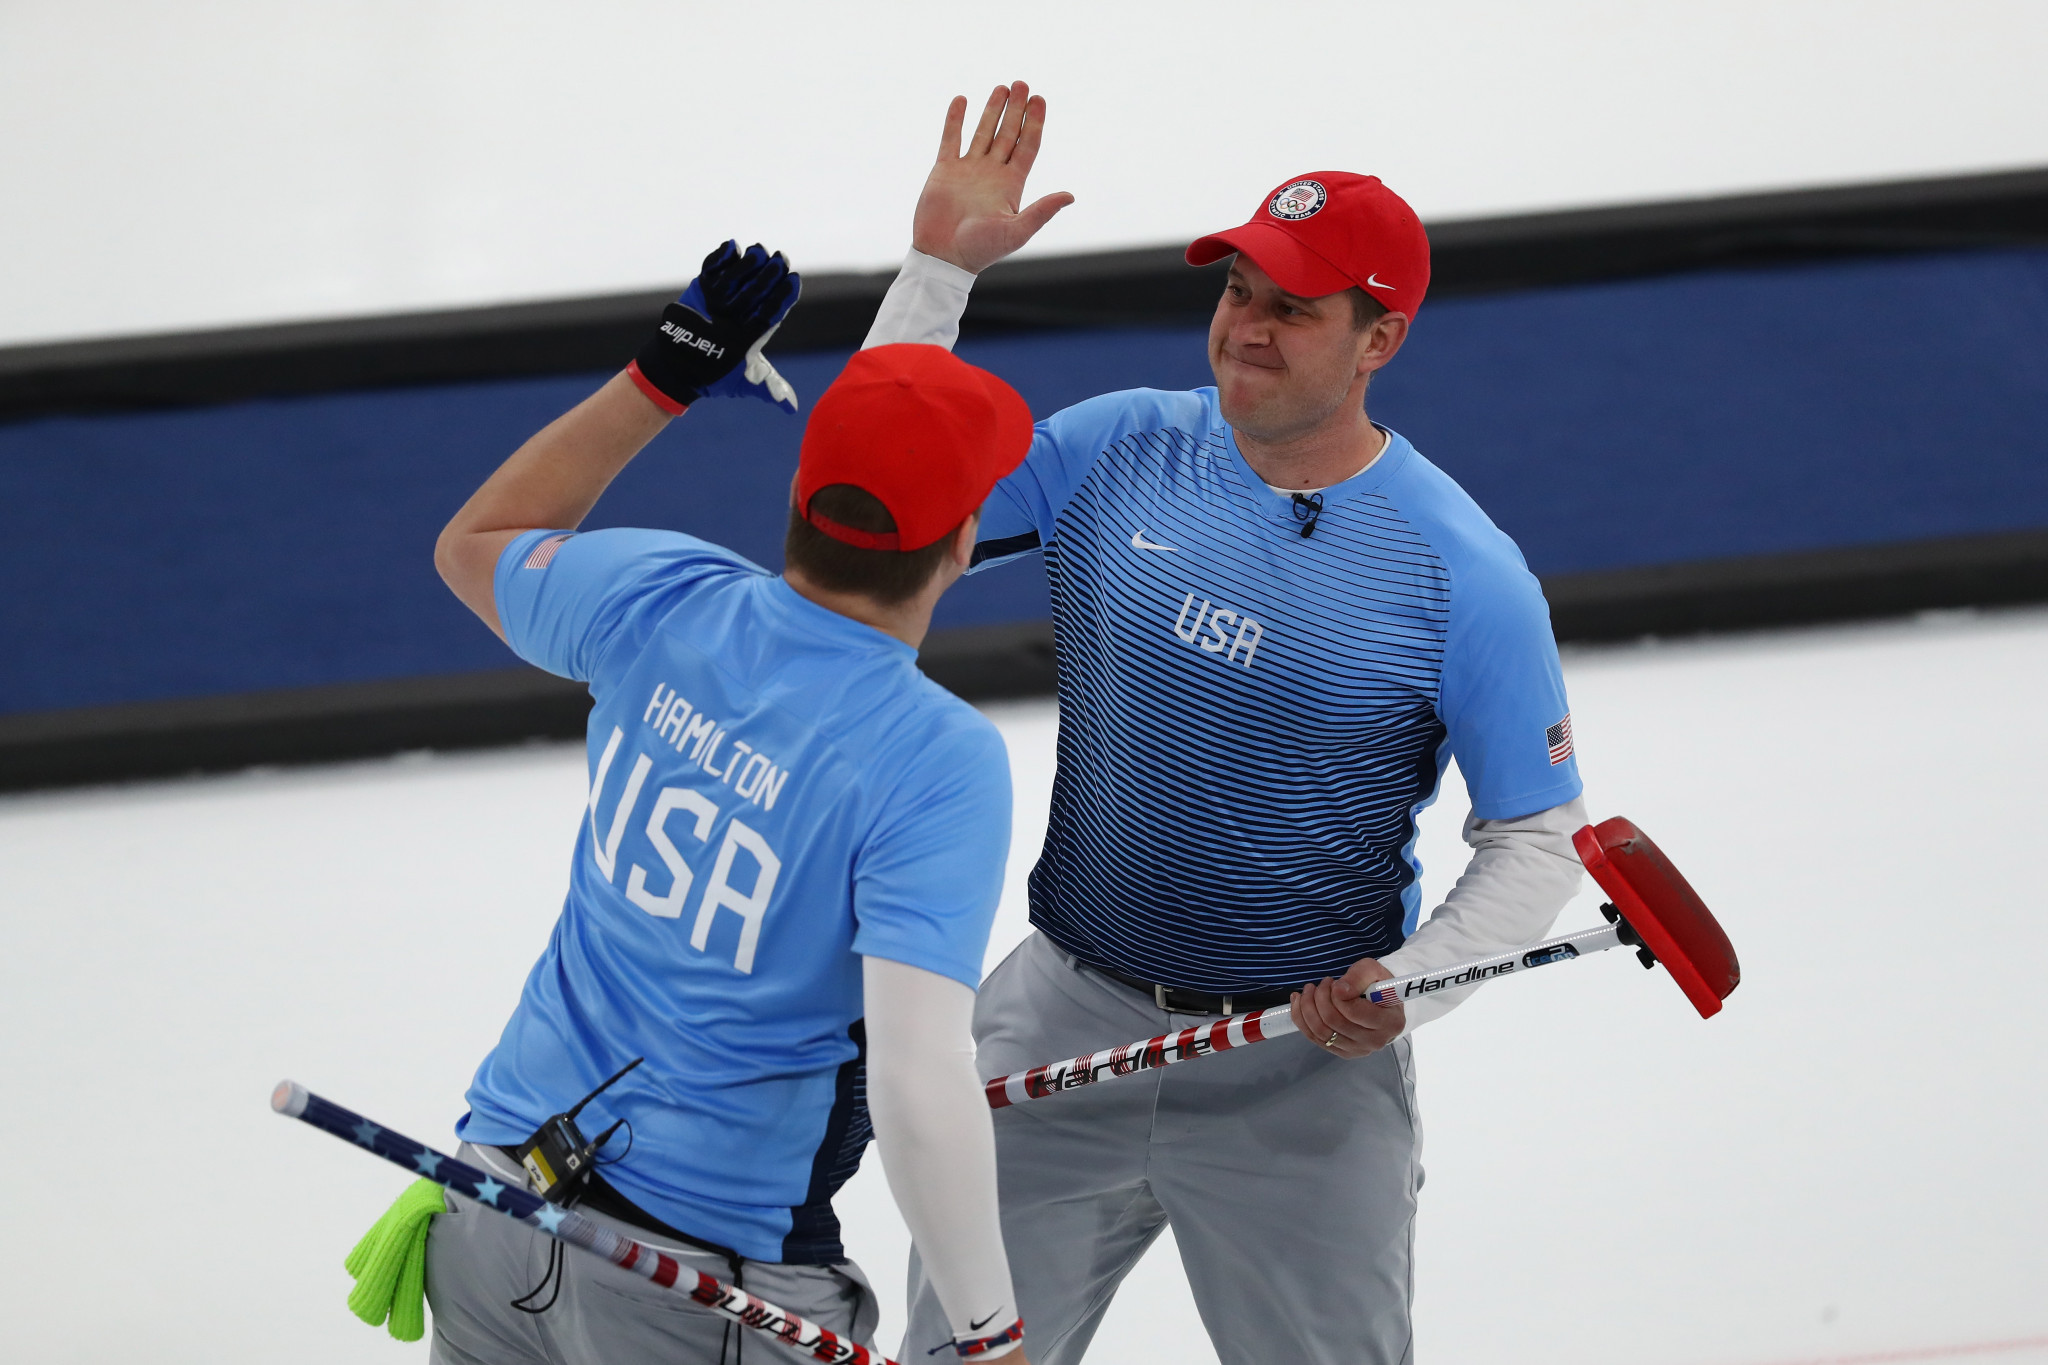 John Shuster's rink will be coached by Don Bartlett ©Getty Images